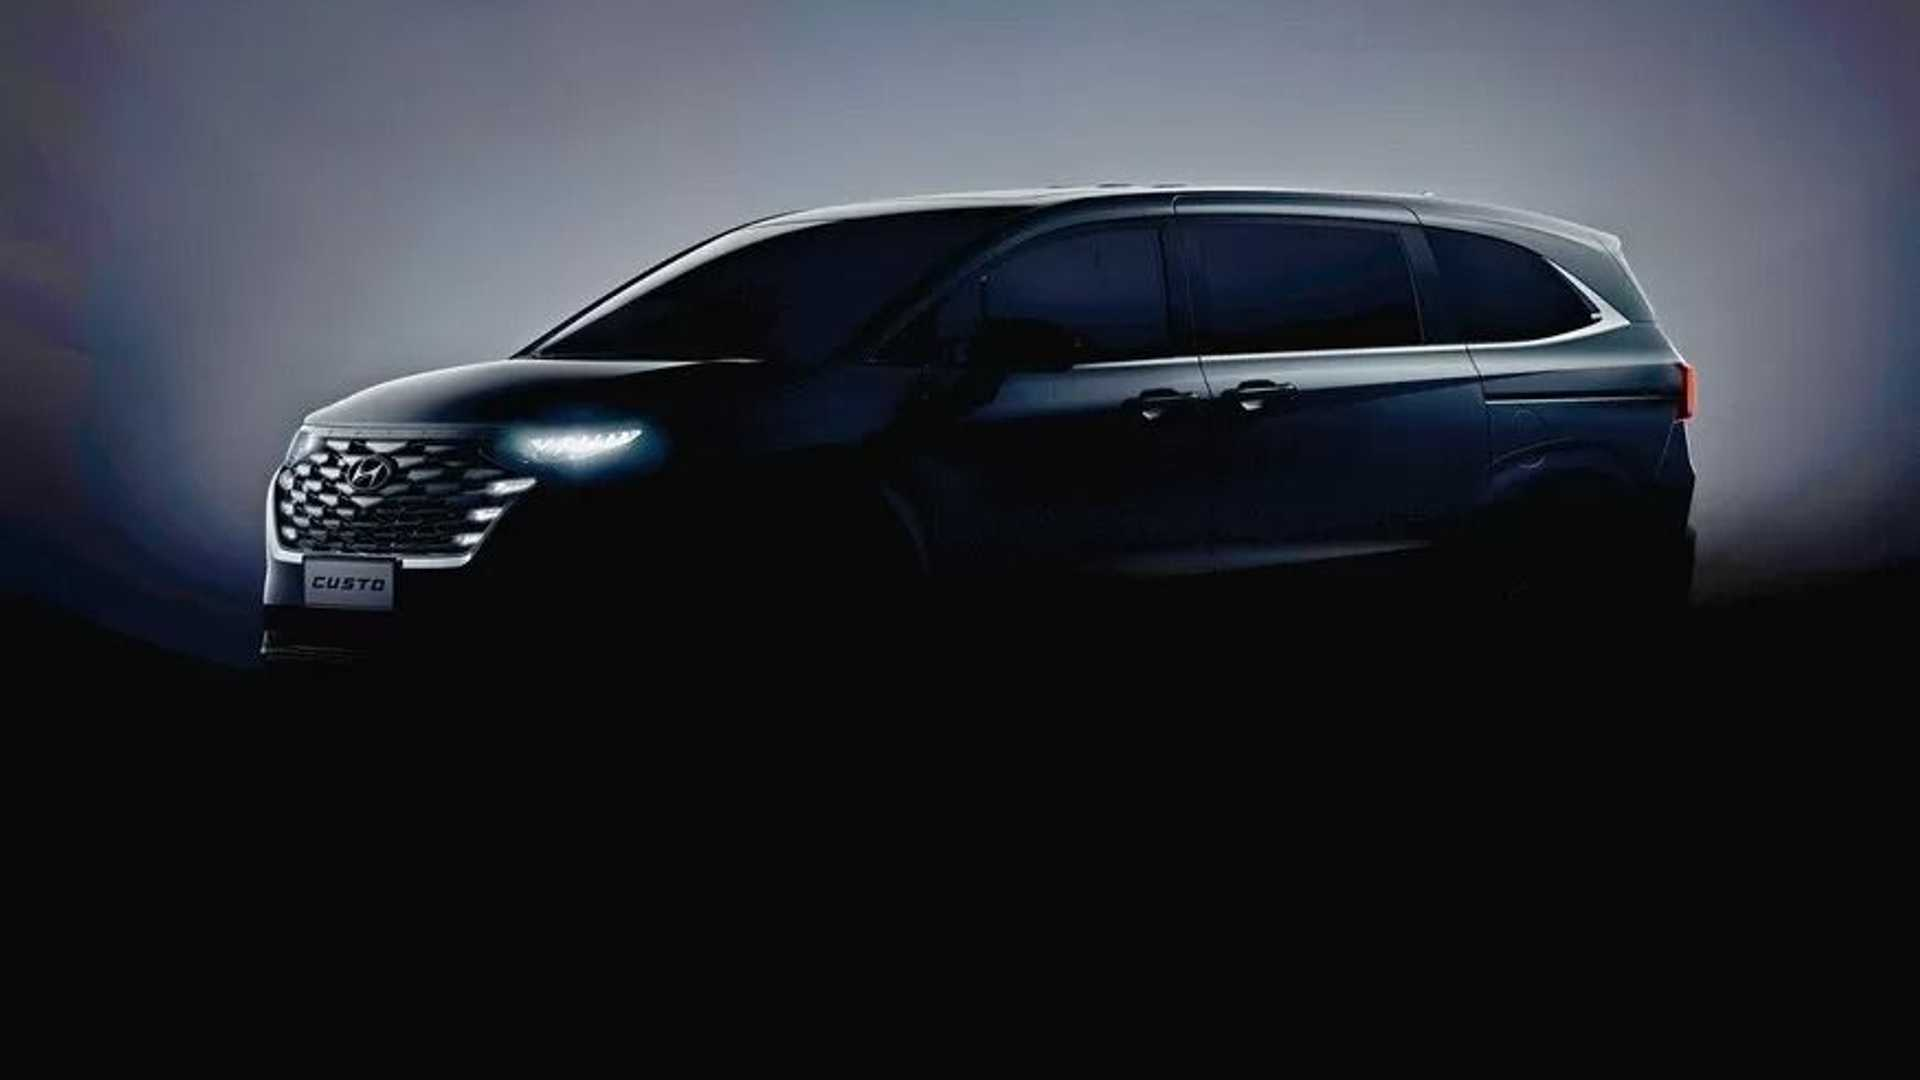 2022 Hyundai Custo Minivan Teased With Unconventional Styling